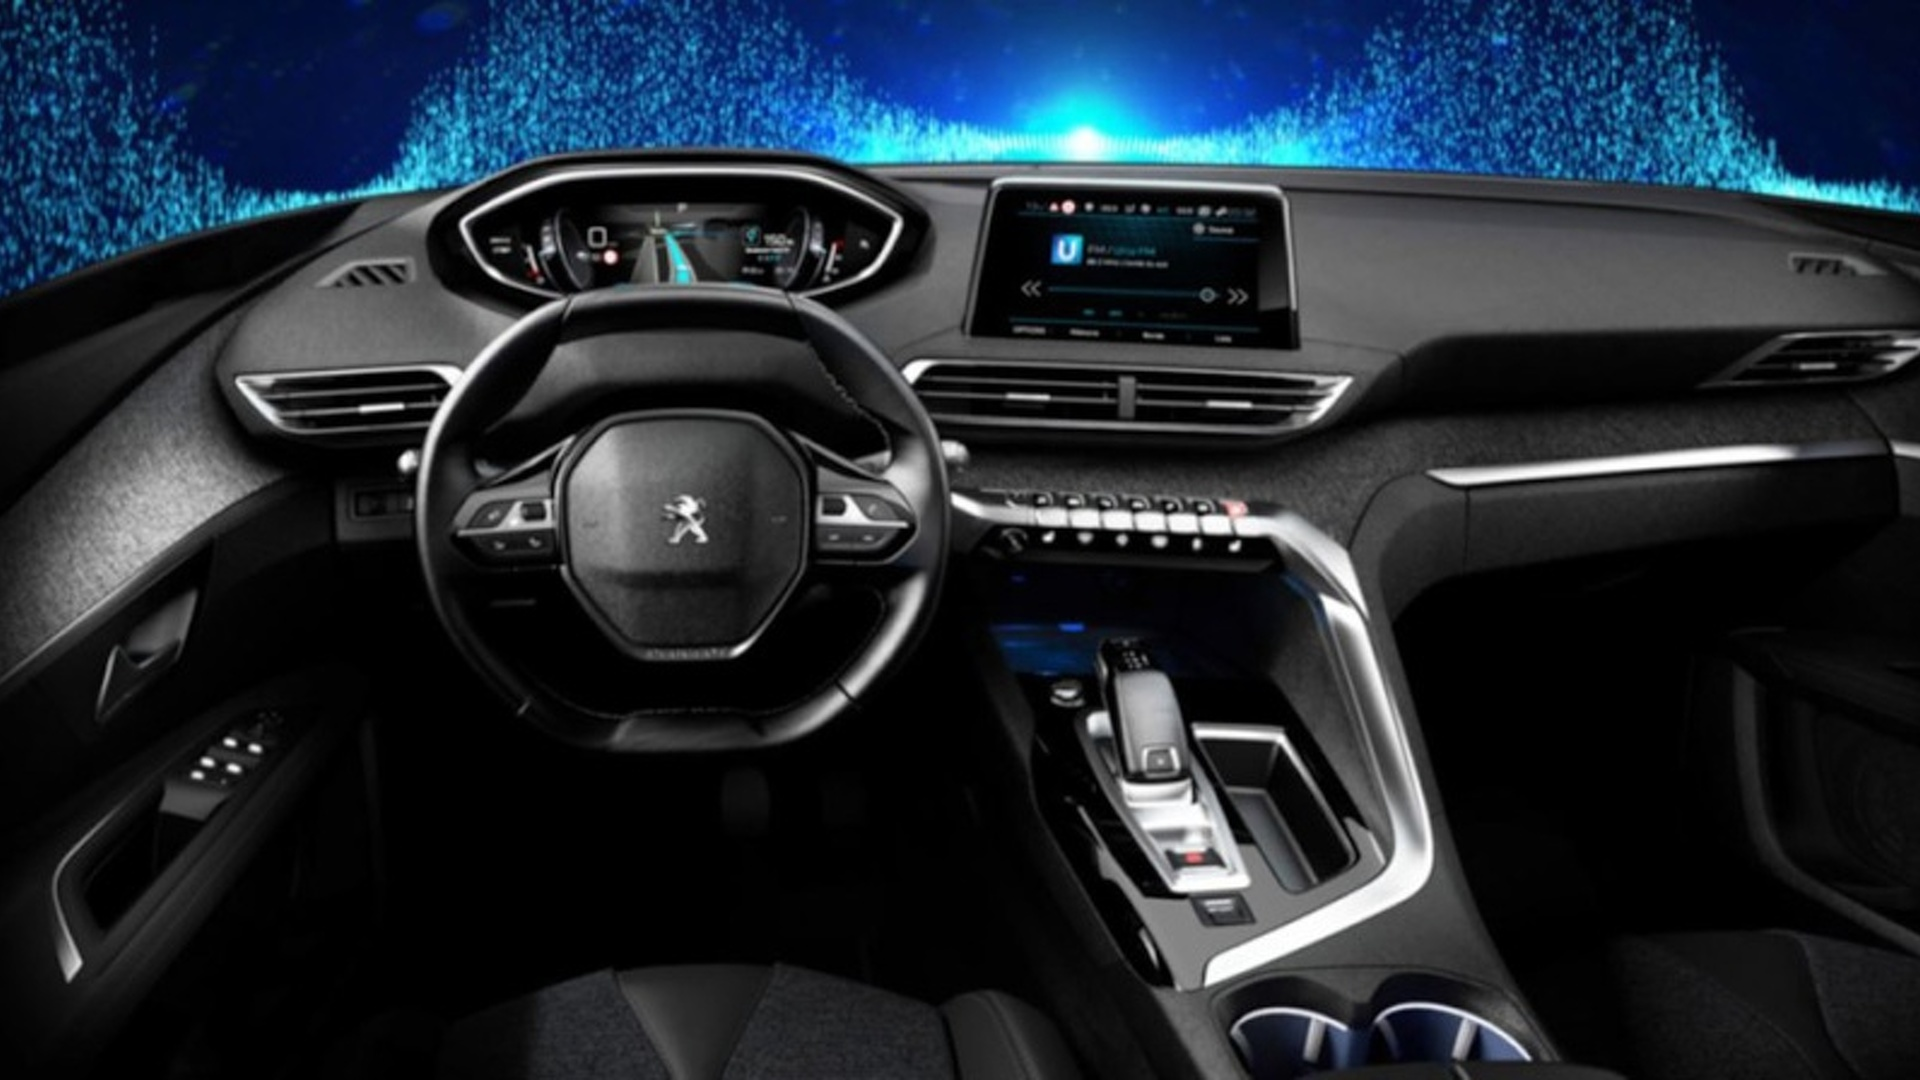 2017 peugeot 3008 official interior pics leaked 2017